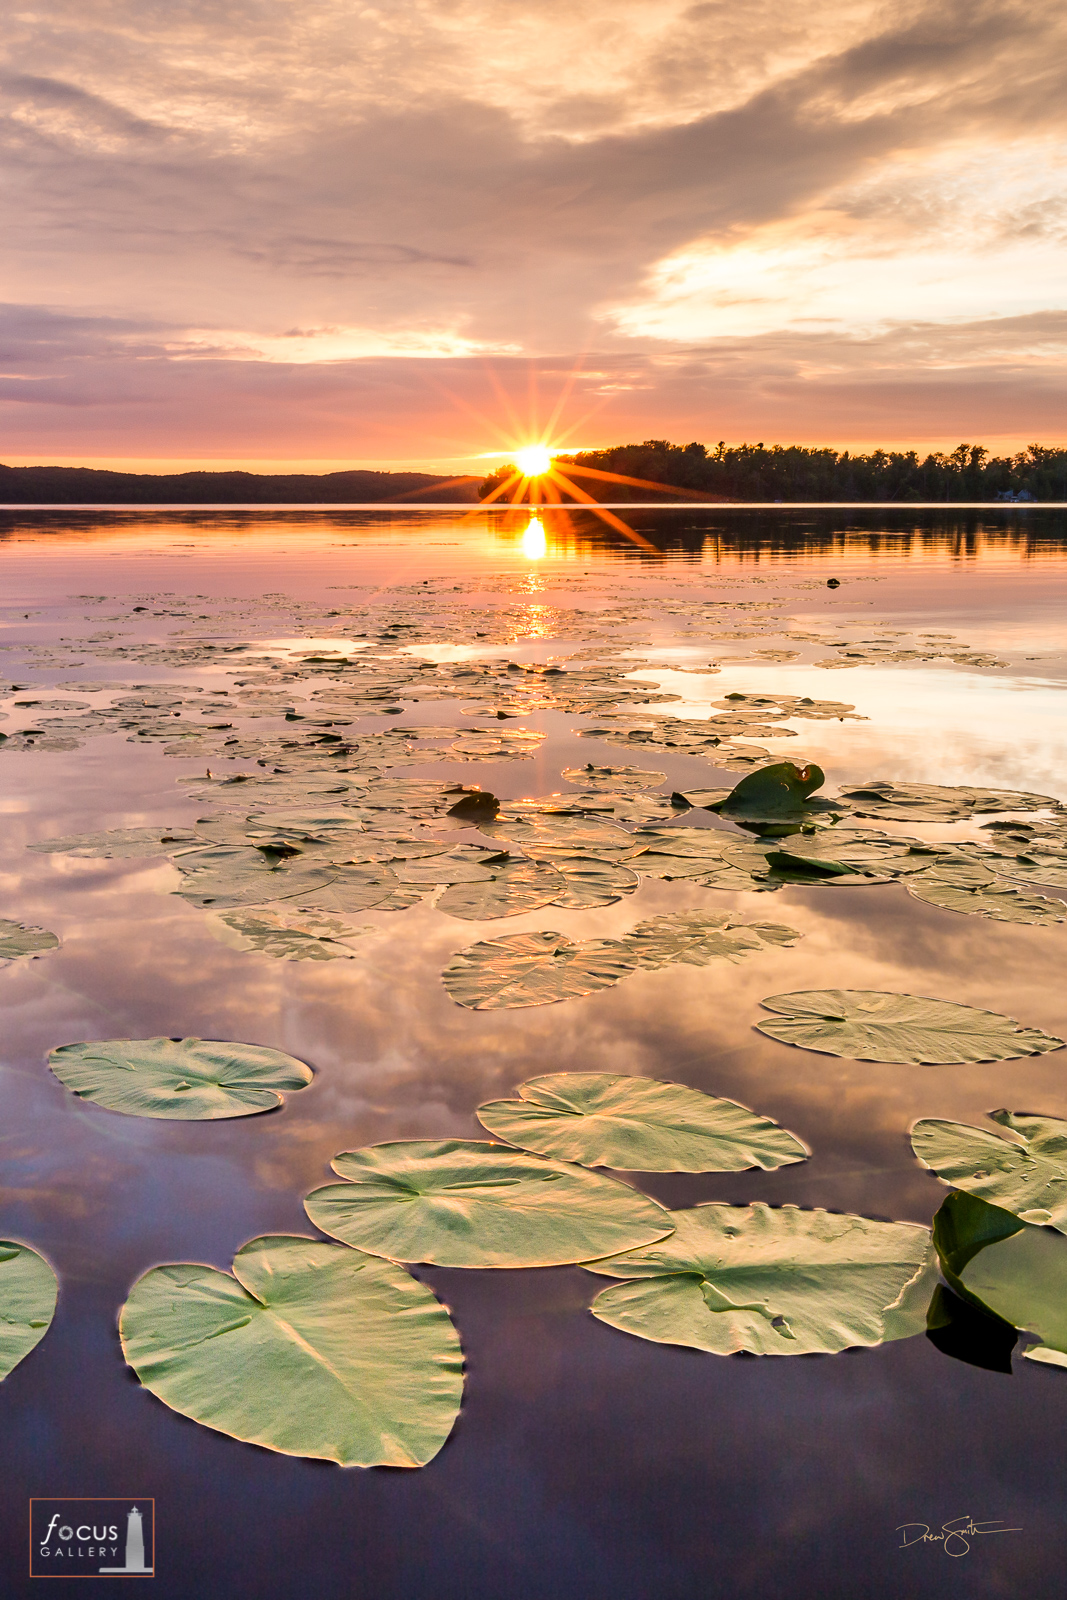 Sunset over Little Platte Lake lily pads, Benzie County, Michigan.